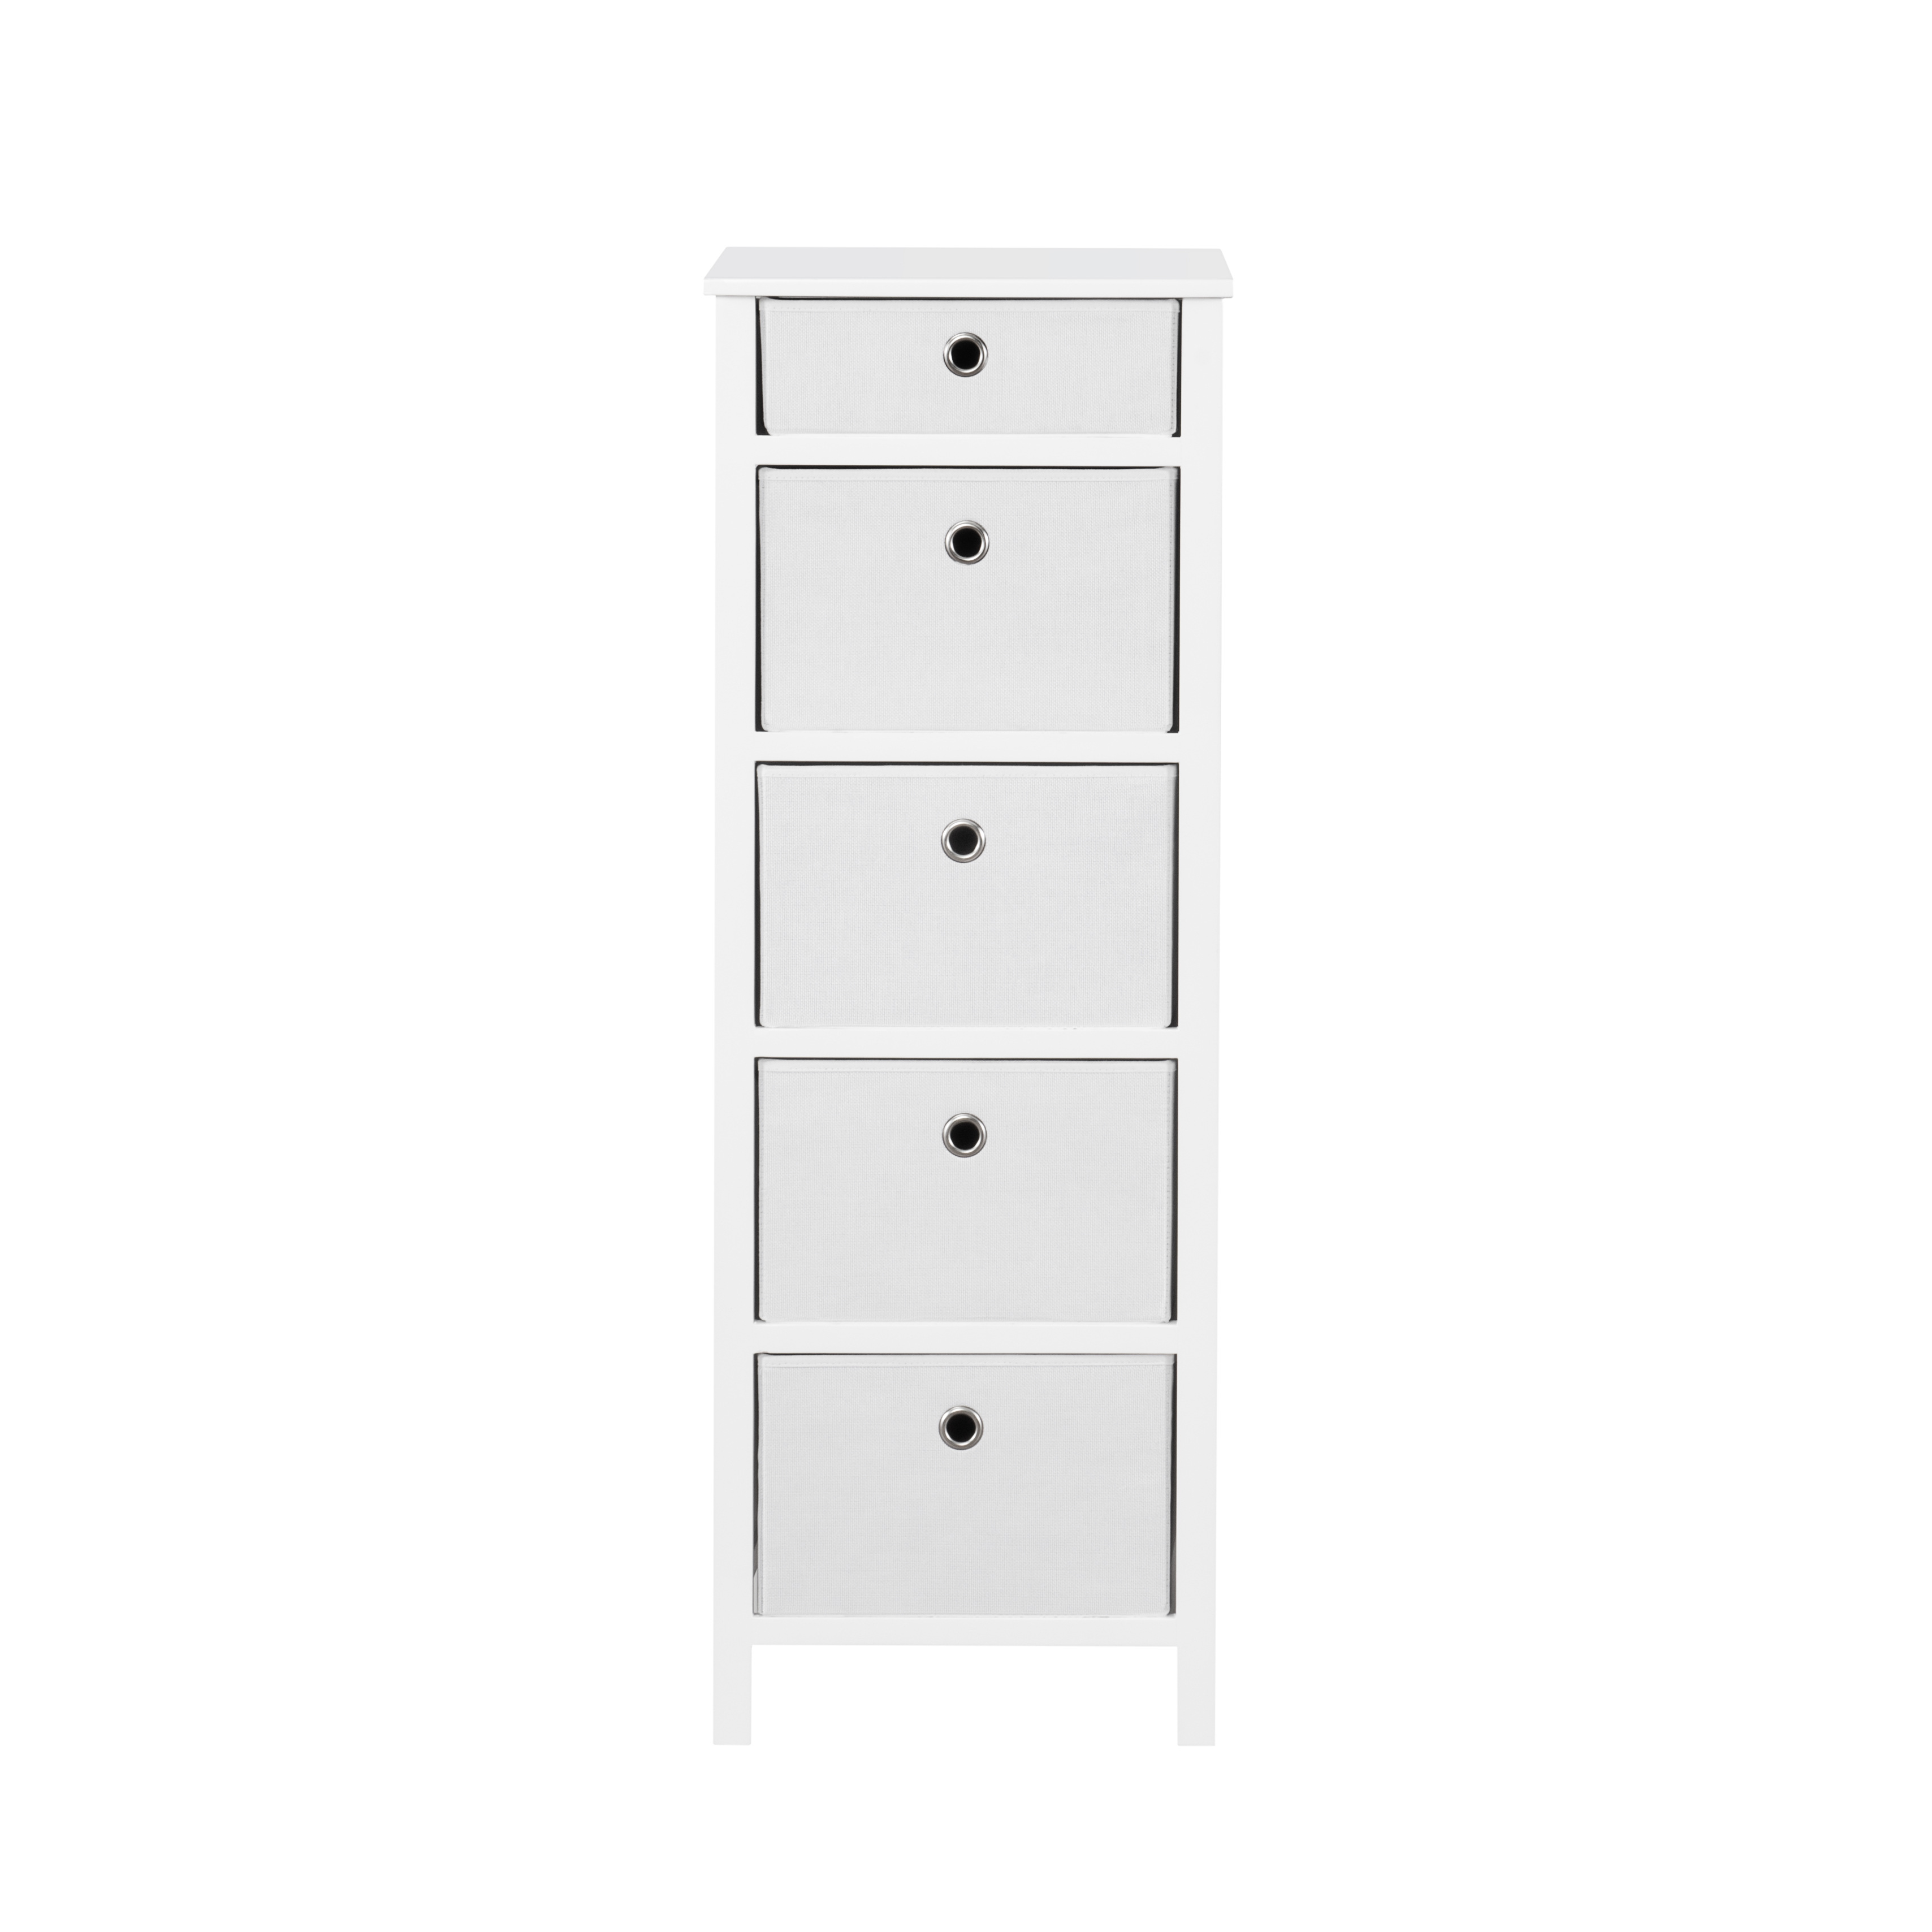 Home Solutions Furniture: Achim Foldable Furniture 5 Drawer Lingerie Chest